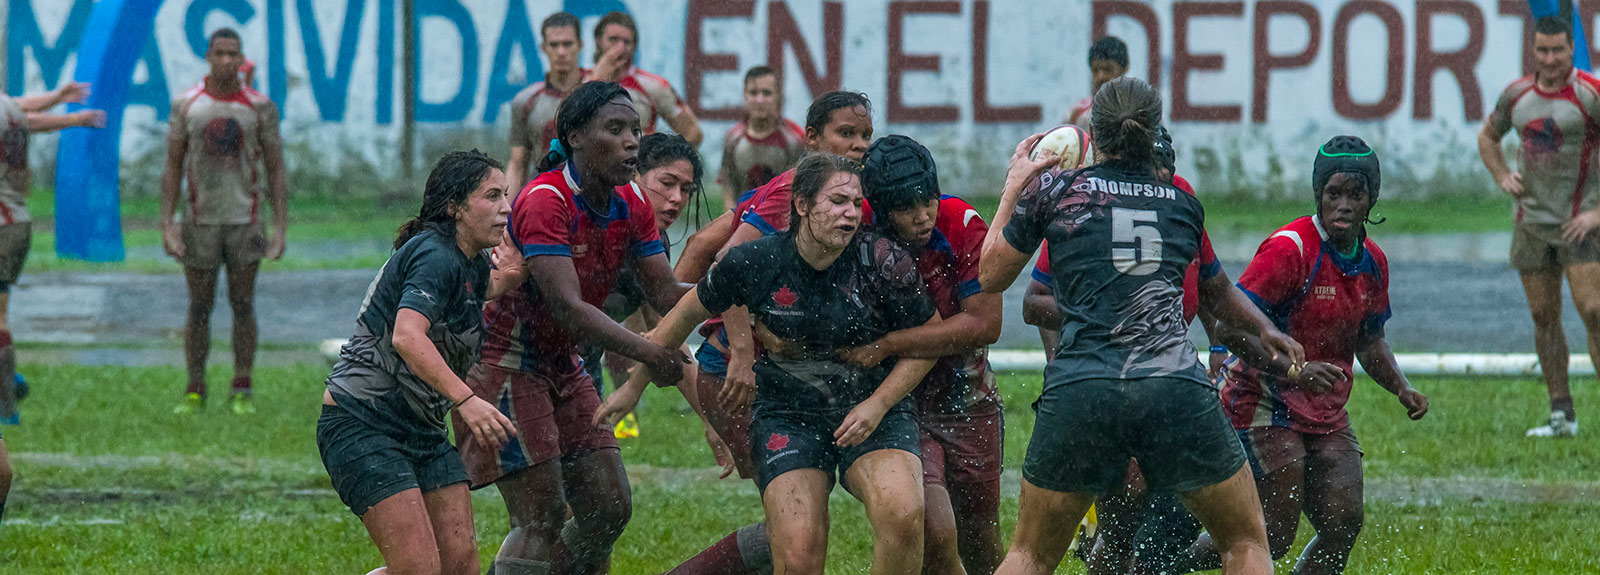 Havana is not known for it's rugby so it was something of a surprise to see rugby posts erected and some pretty formidable looking men (and woman) limbering up last weekend at the Eduardo Saborit Stadium in Havana's leafy Western suburb of Siboney.  Havana, Cuba